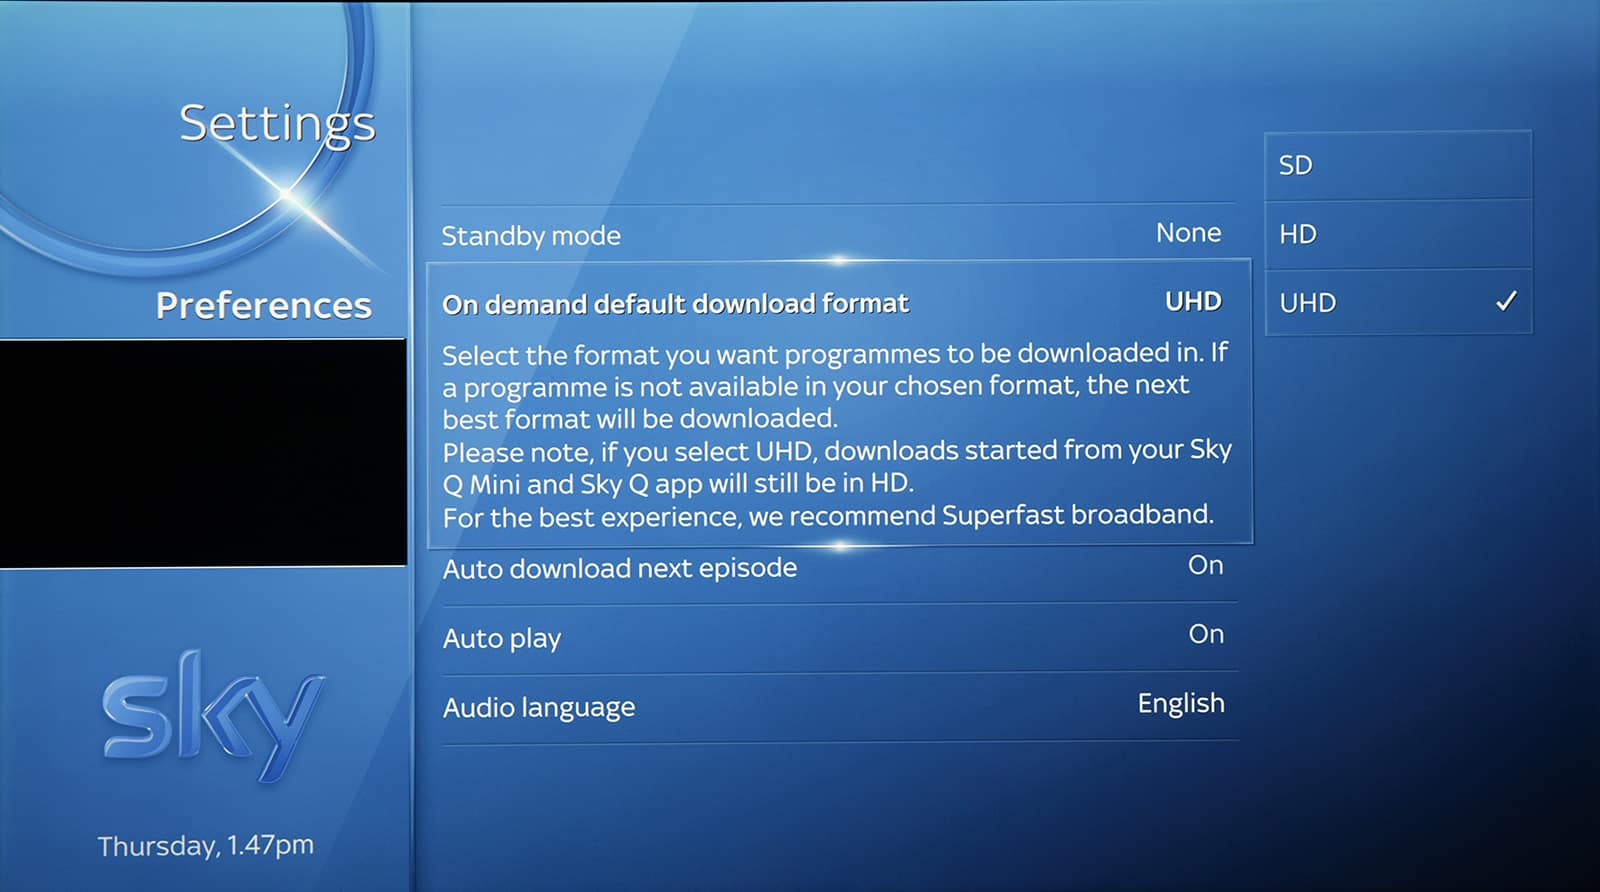 On demand default download for Sky